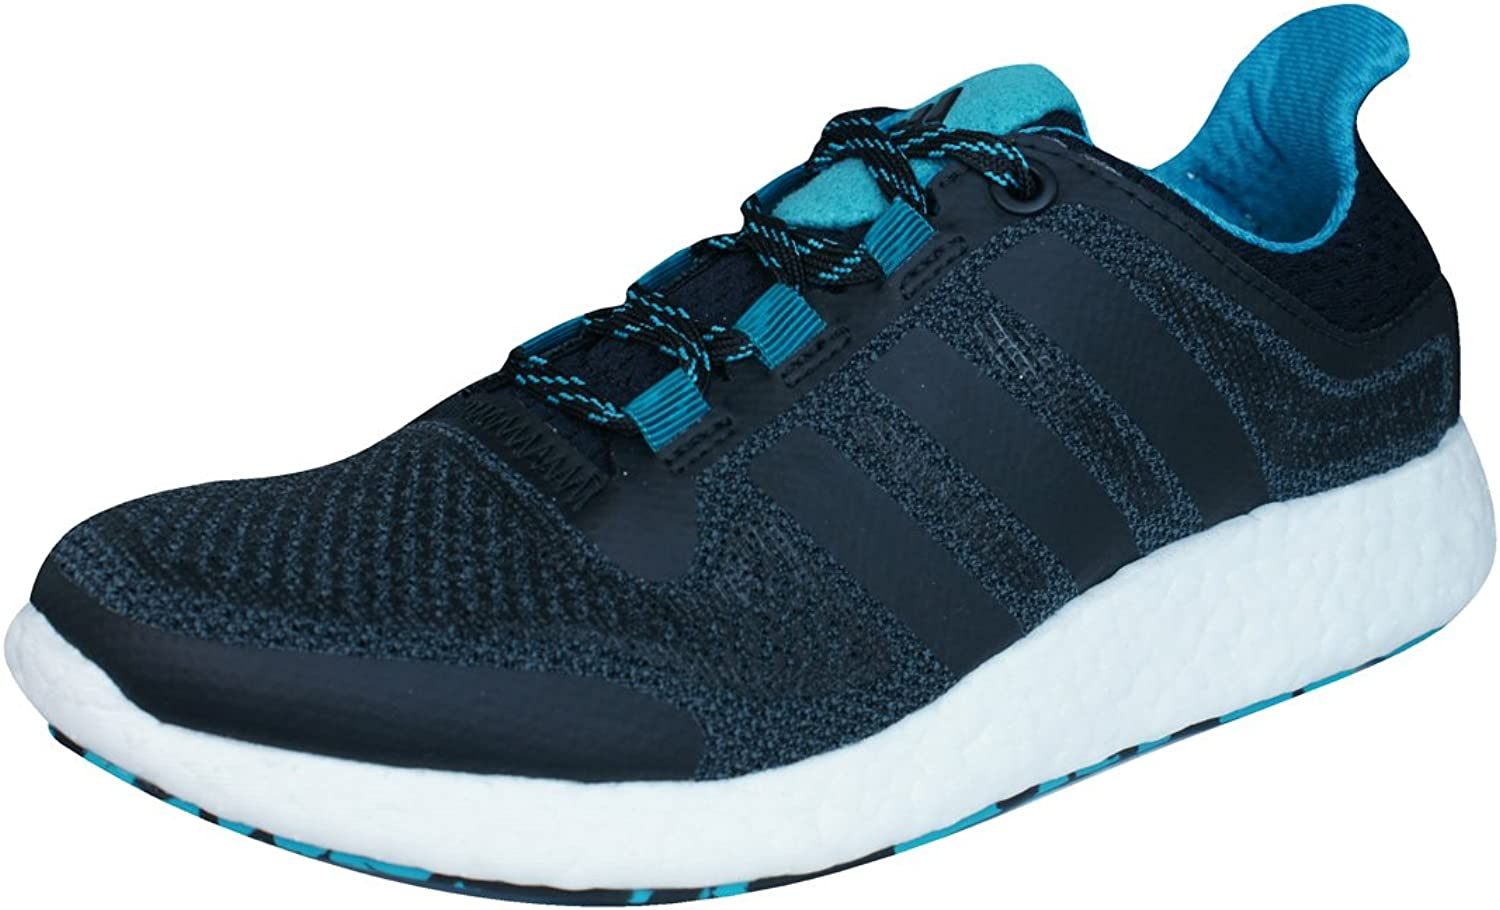 Adidas Pureboost 2 Womens Running Sneakers shoes